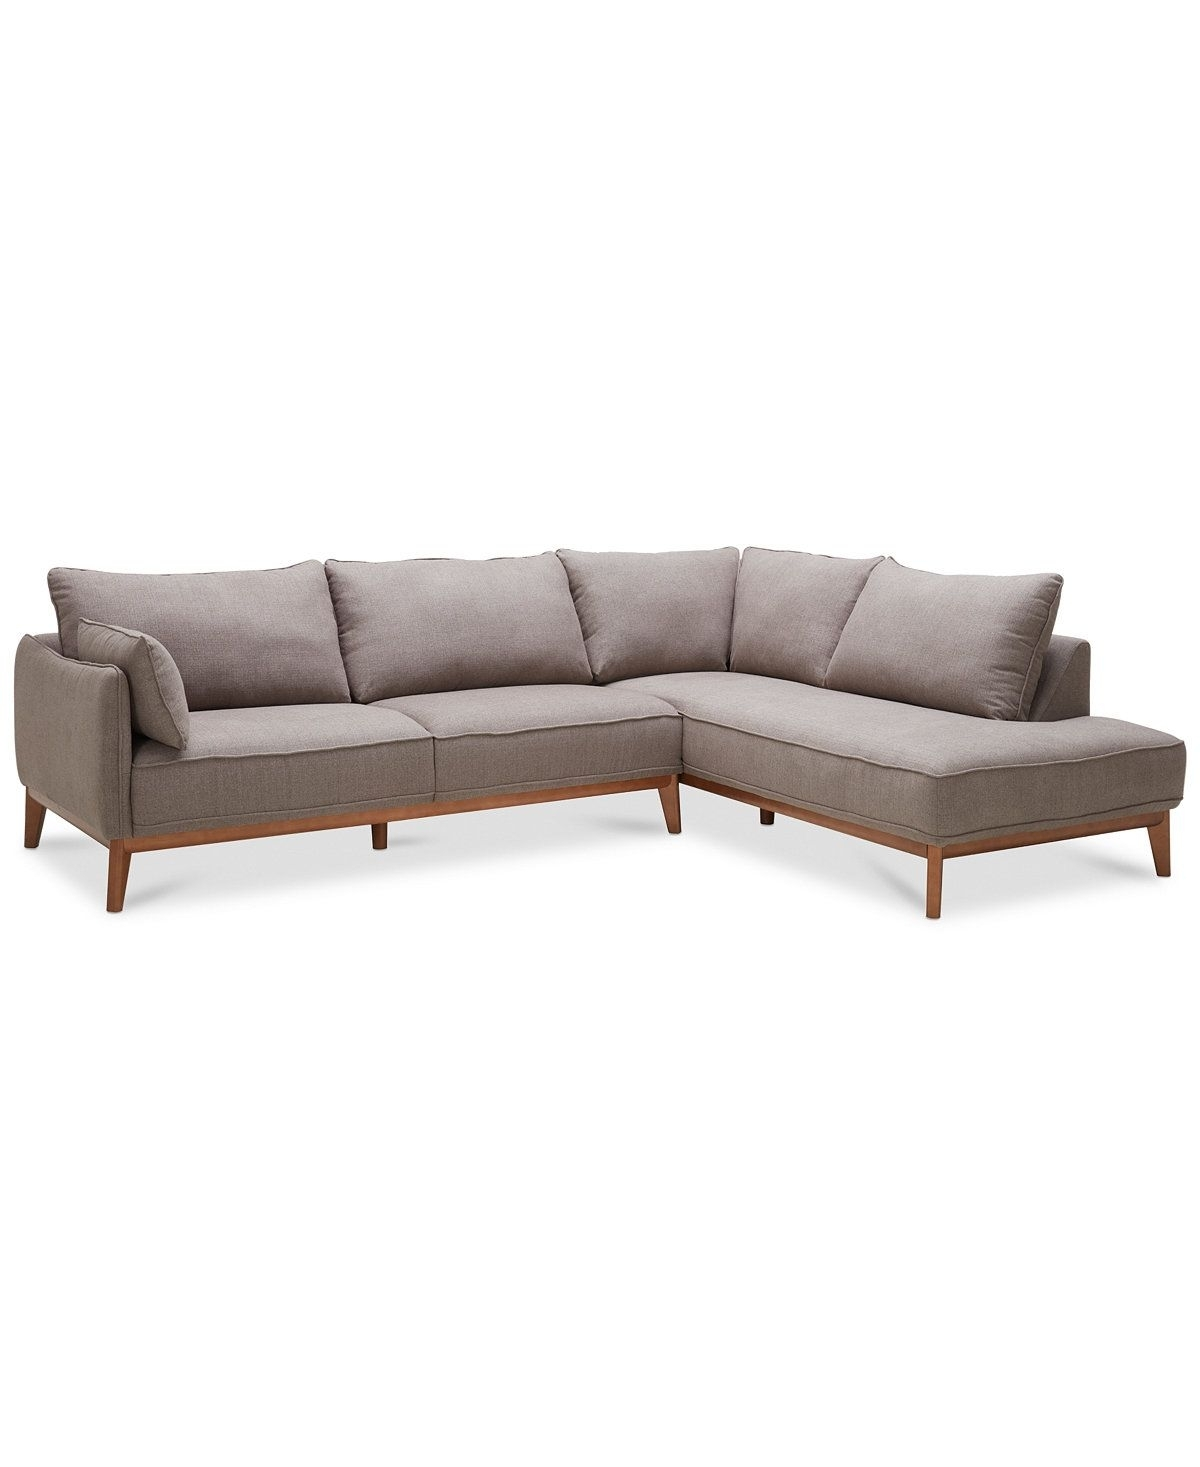 Jollene 113 2-Pc. Sectional, Created For Macy's | Sofas | Pinterest pertaining to Turdur 2 Piece Sectionals With Laf Loveseat (Image 10 of 30)